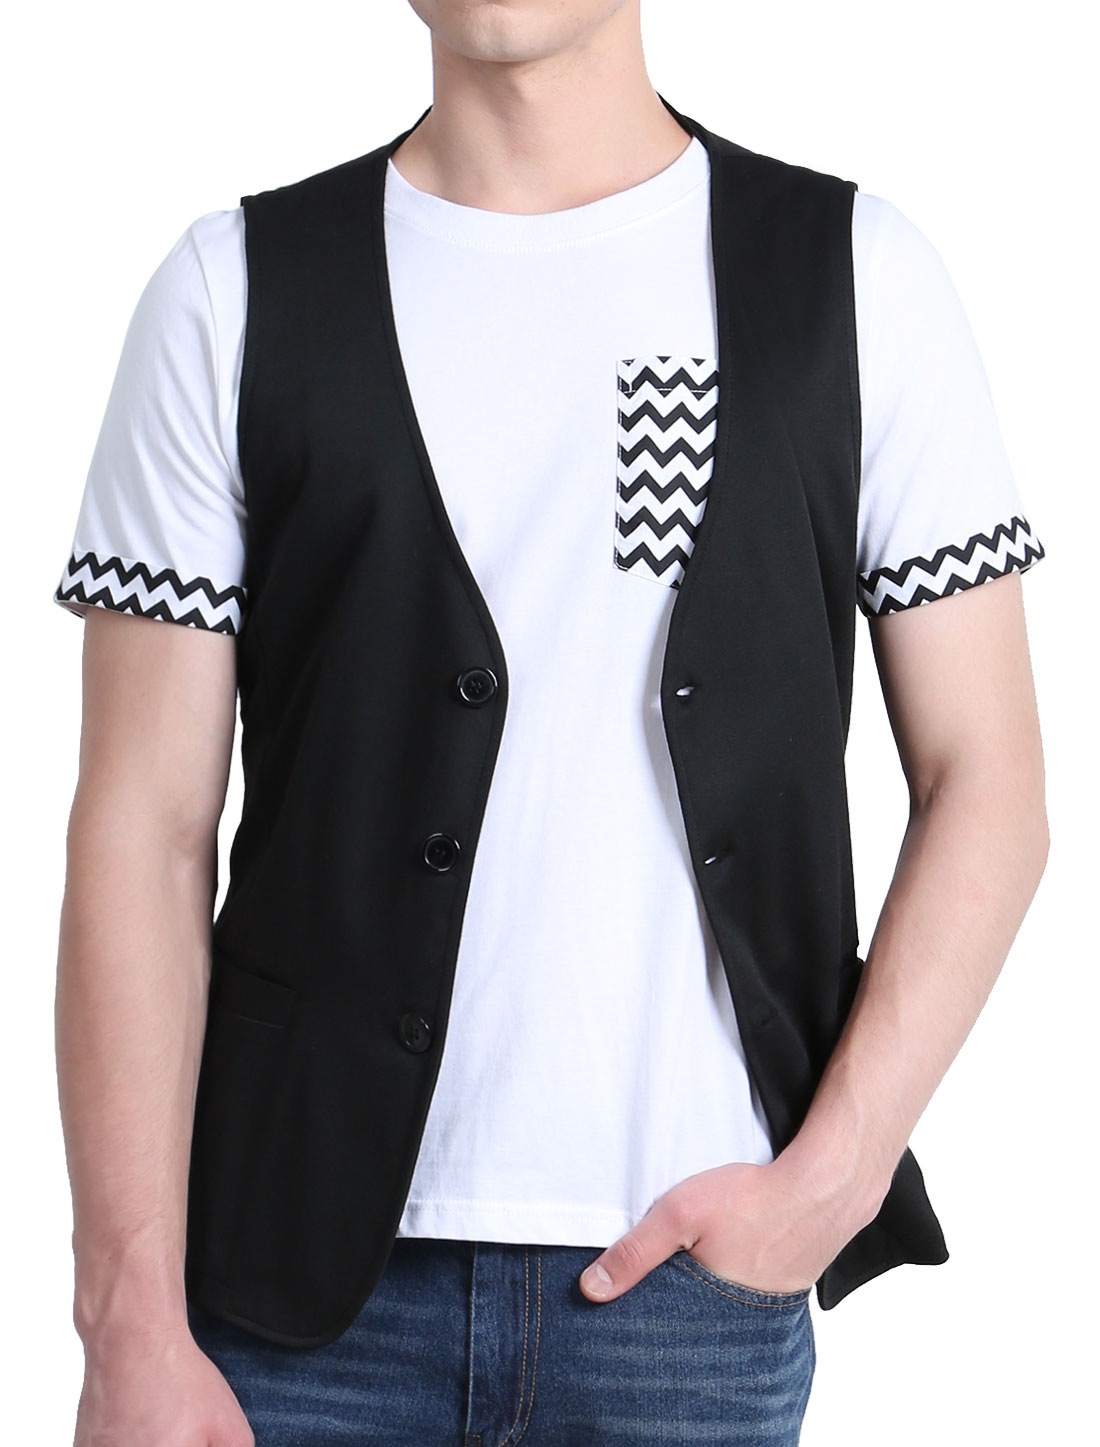 Mens Black Fashion Sleeveless Button Down Solid Color Two Pockets Vest M